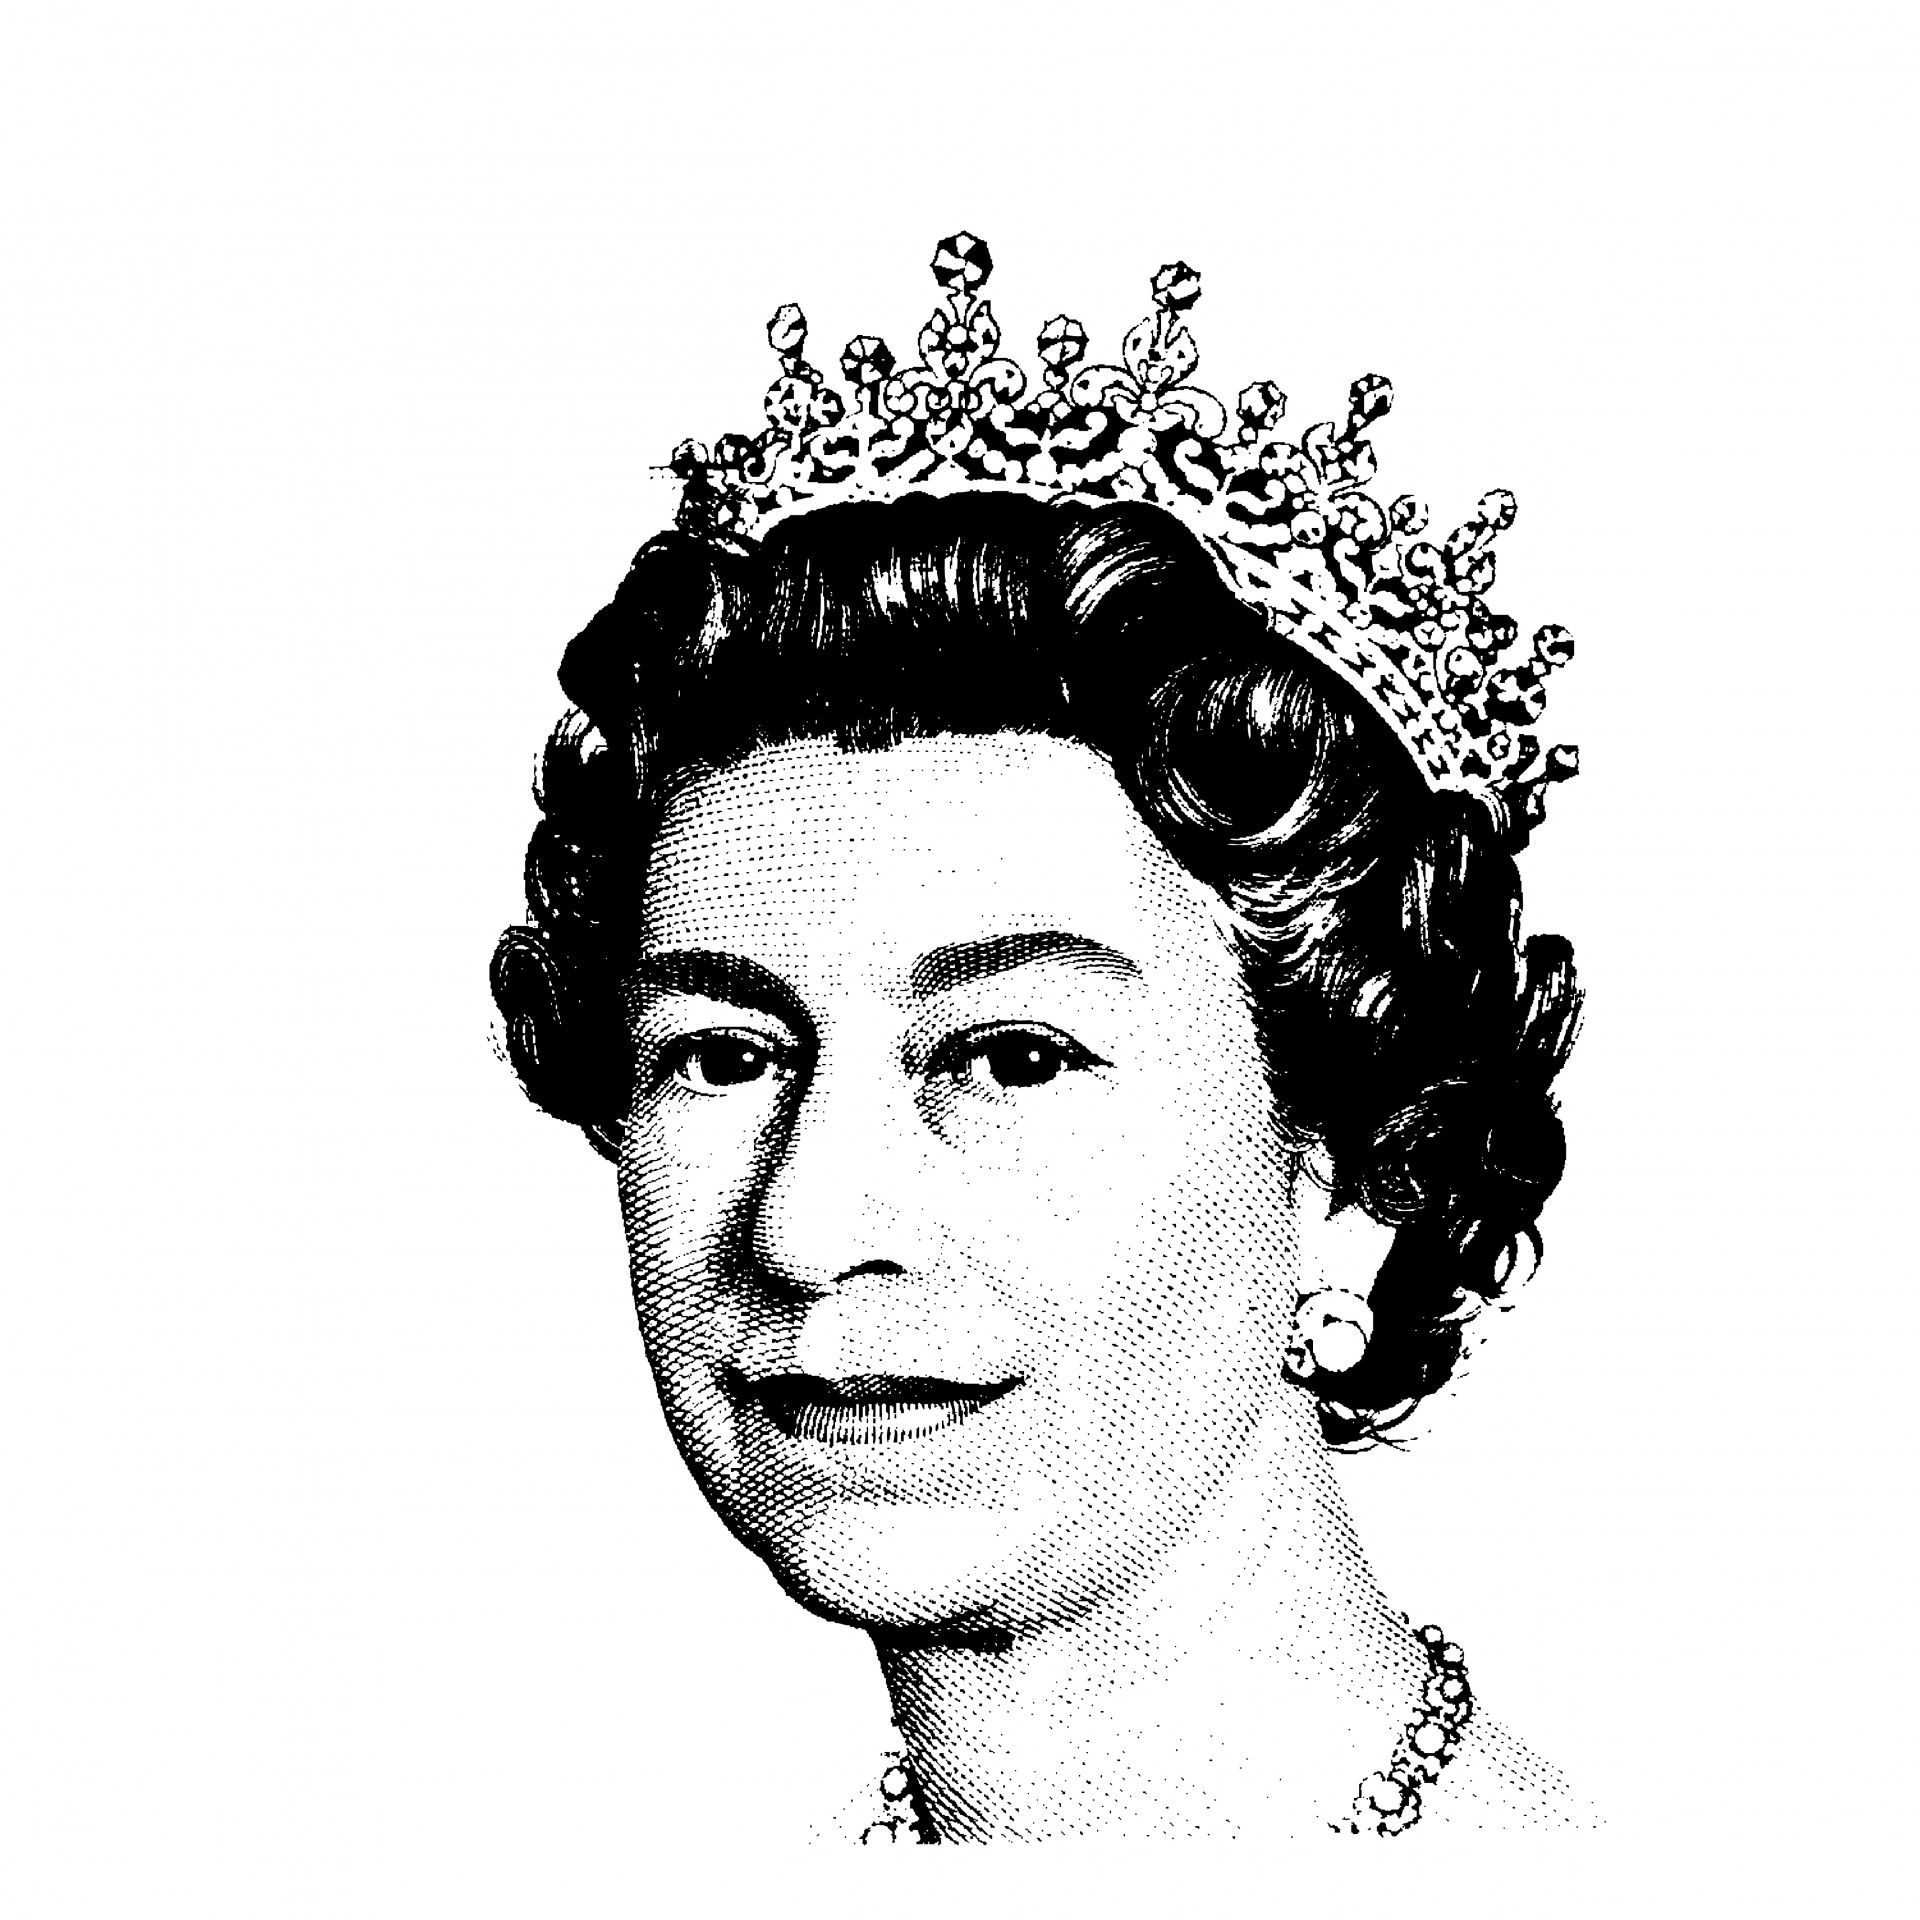 Queen of england clipart clip art free library Queen Elizabeth II Clipart Free Stock Photo - Public Domain Pictures clip art free library